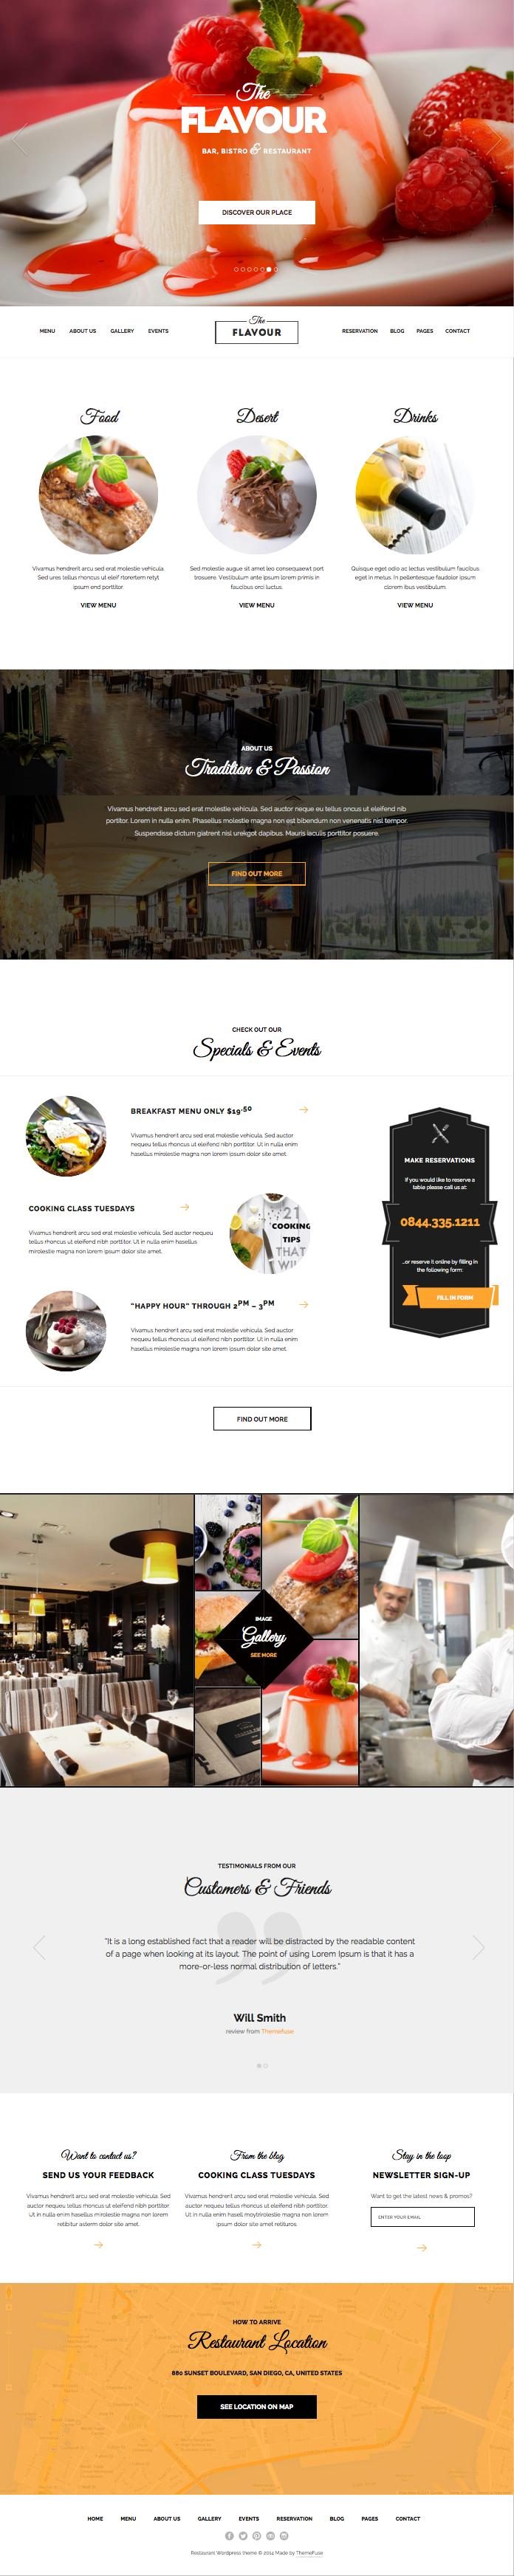 The Flavour WordPress Modern Restaurant Theme